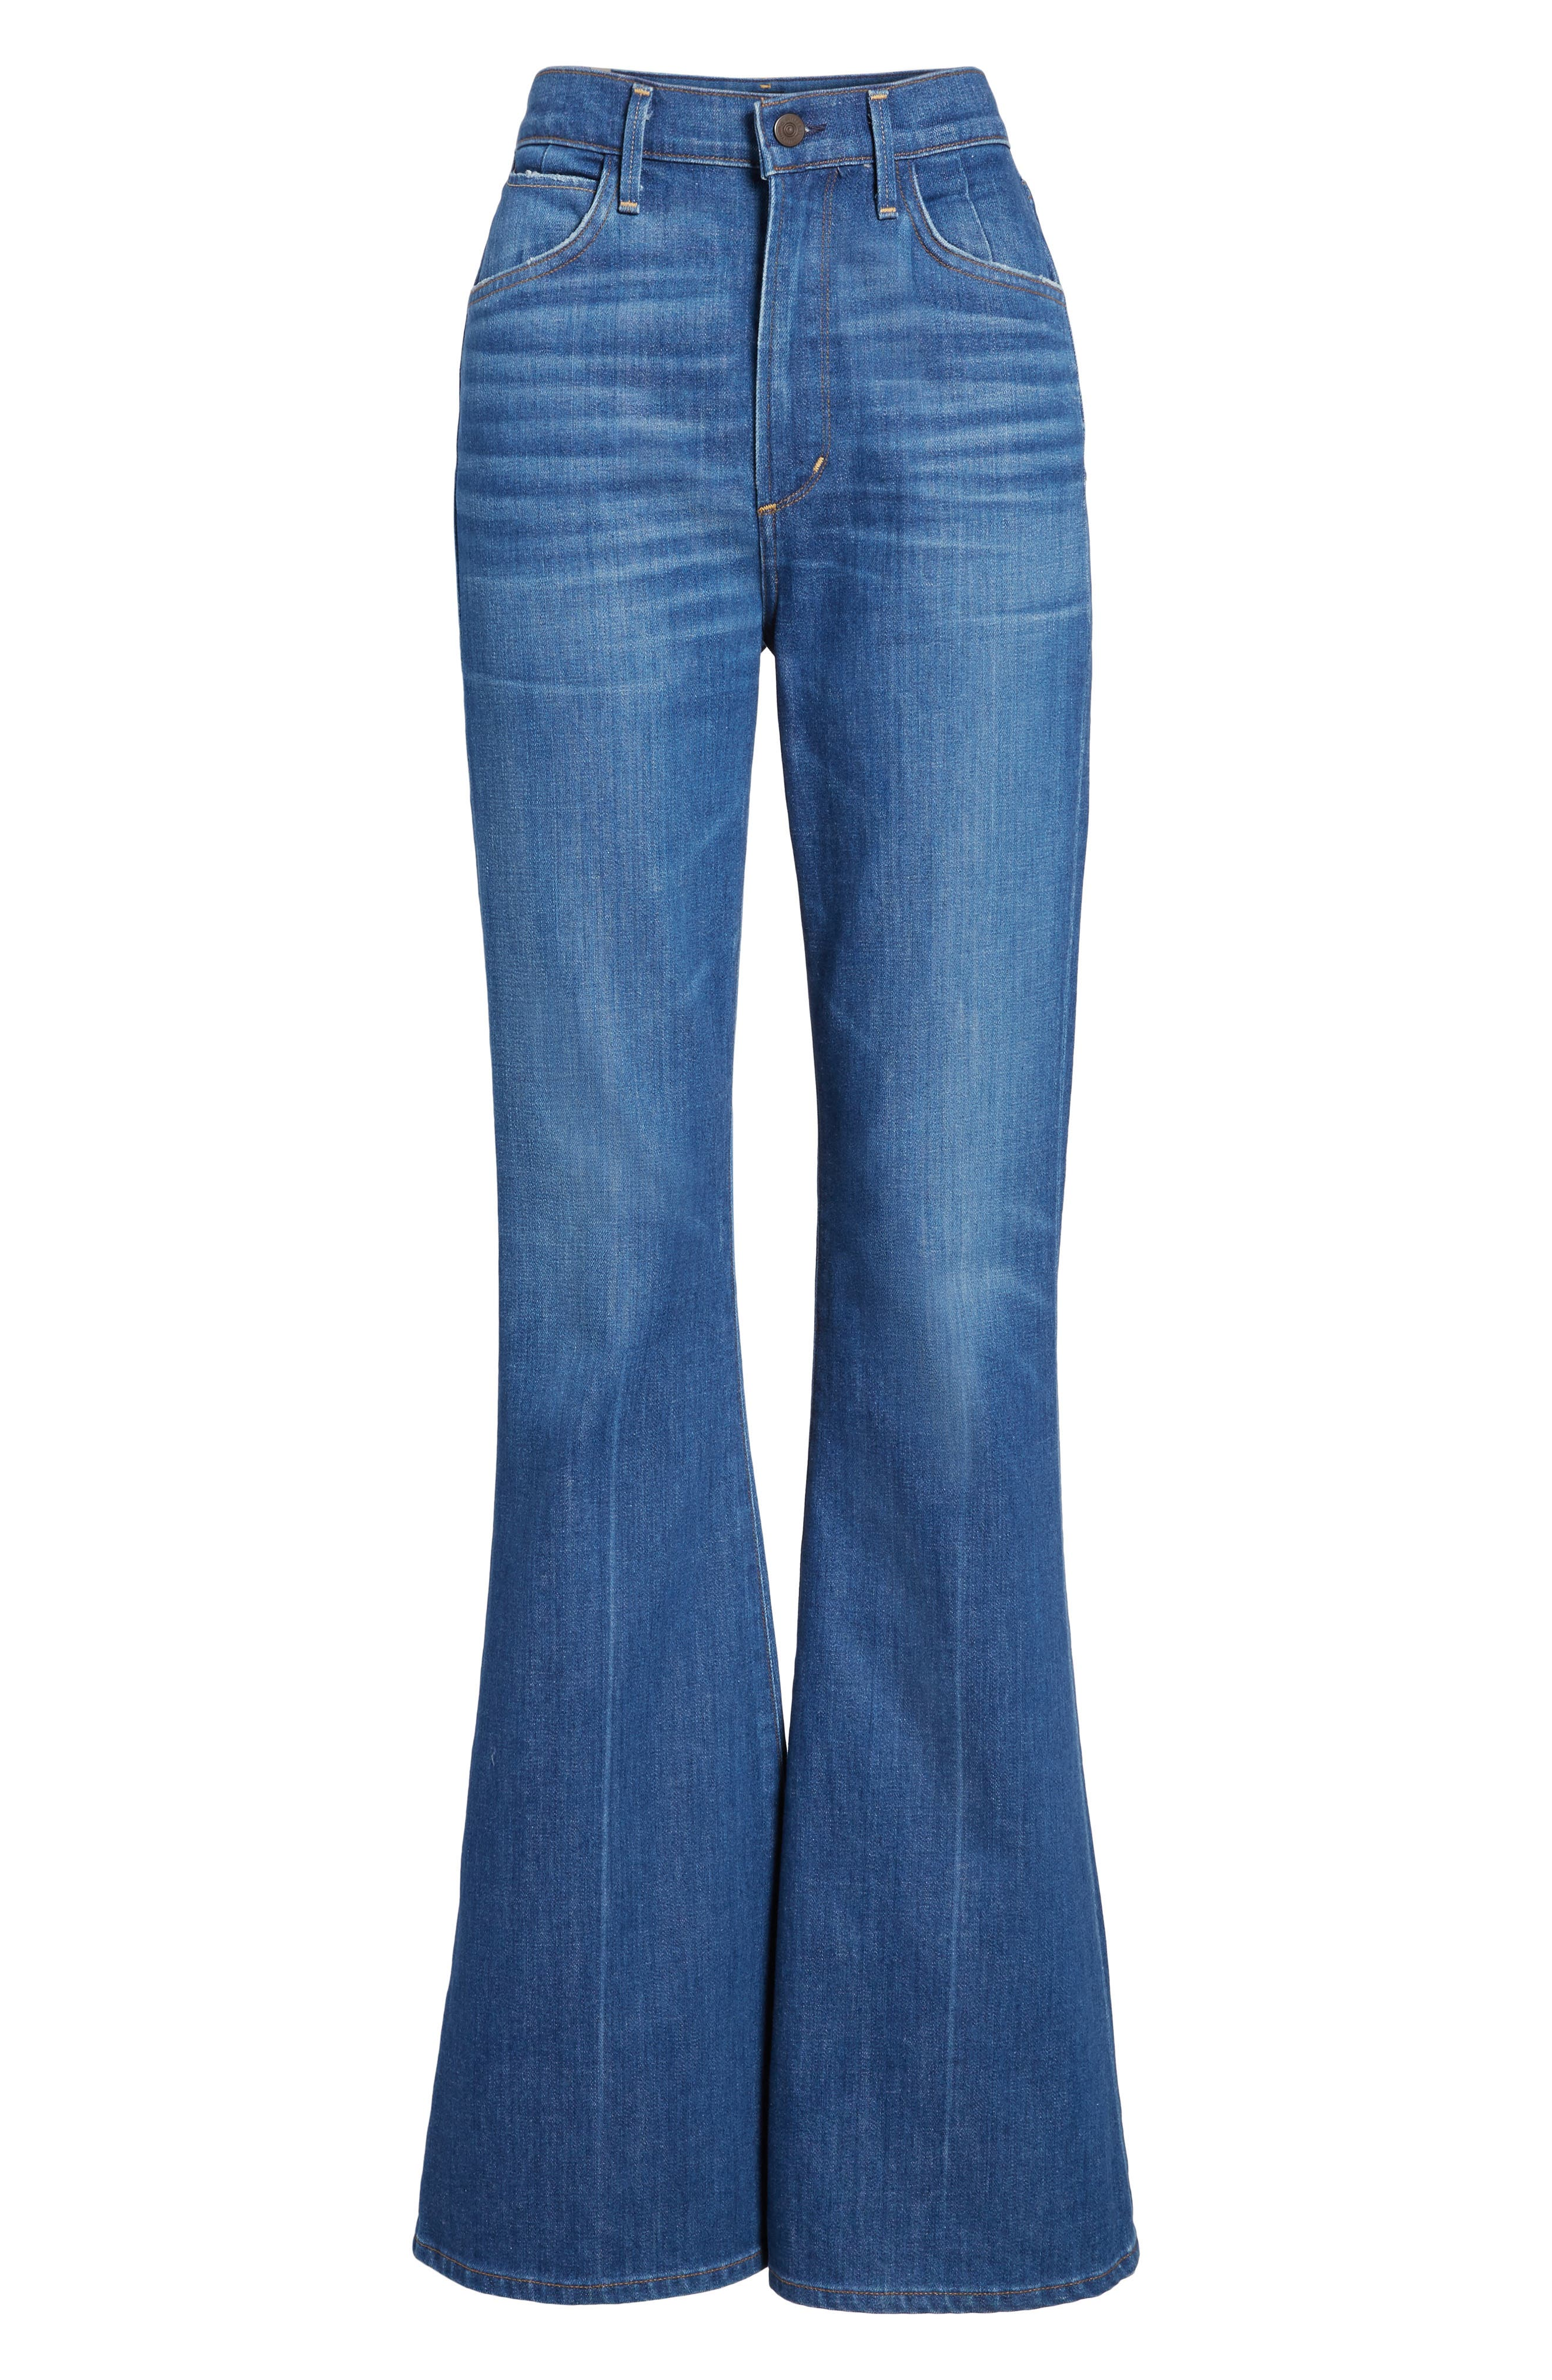 Cherie High Waist Bell Jeans,                             Alternate thumbnail 7, color,                             Frampton